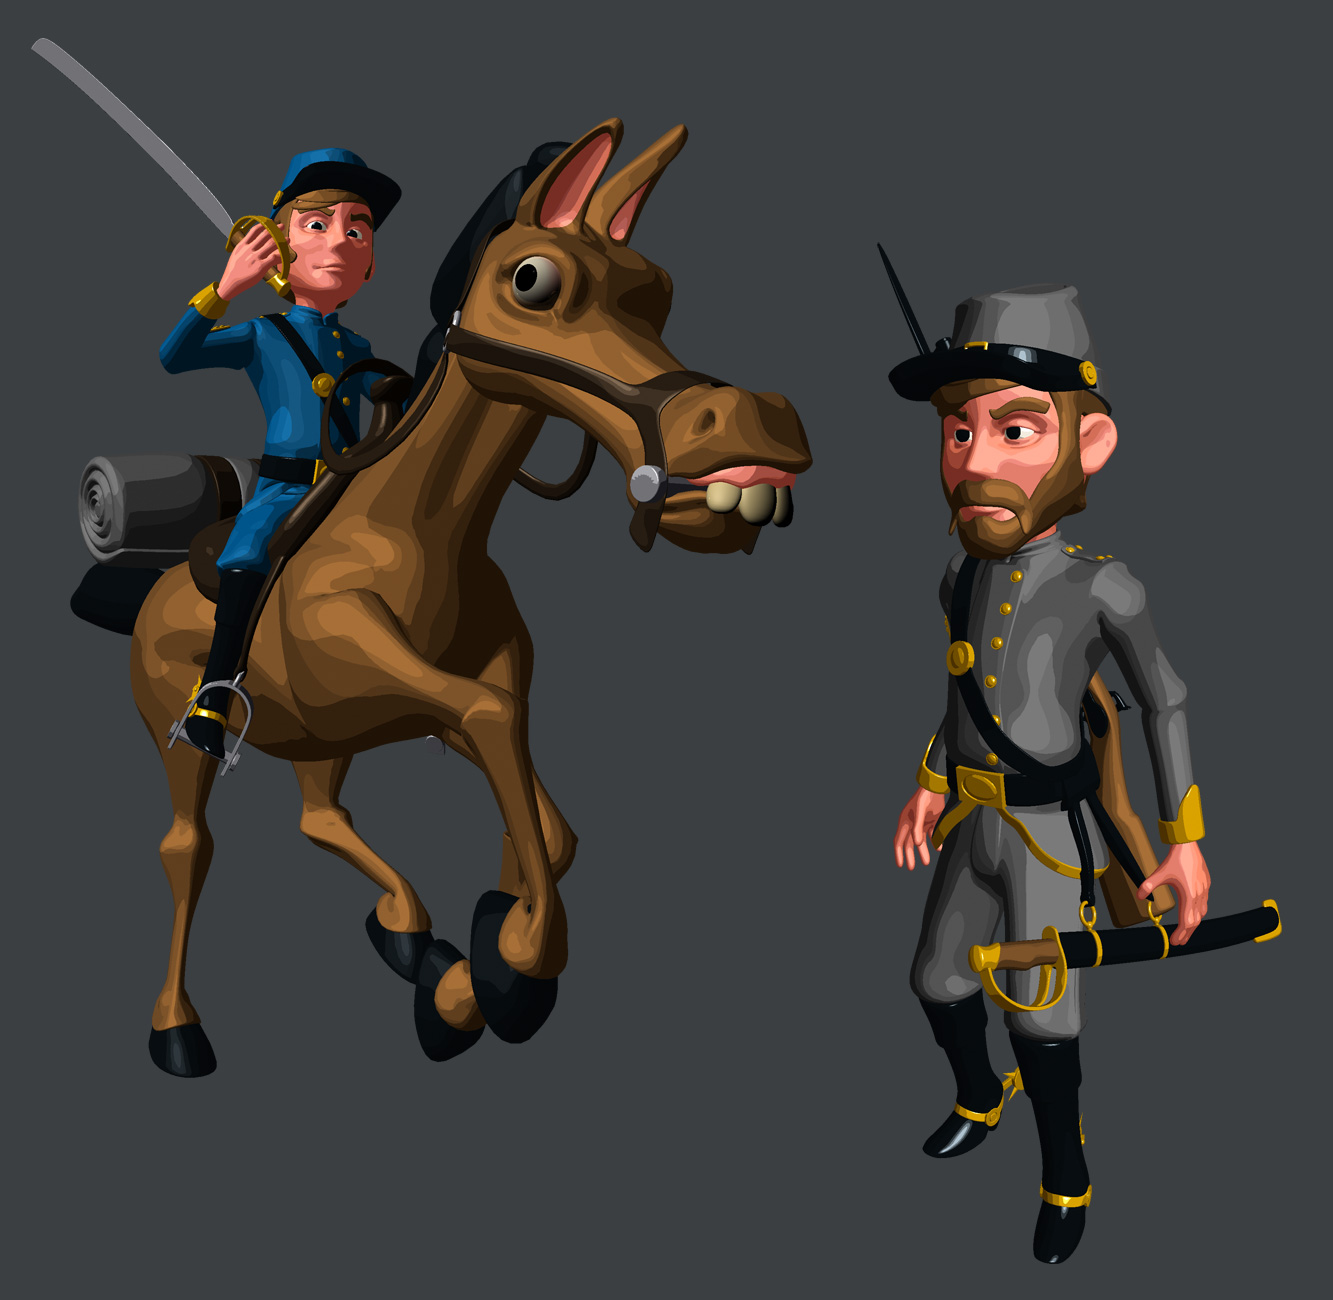 North and South soldiers by plastictrash